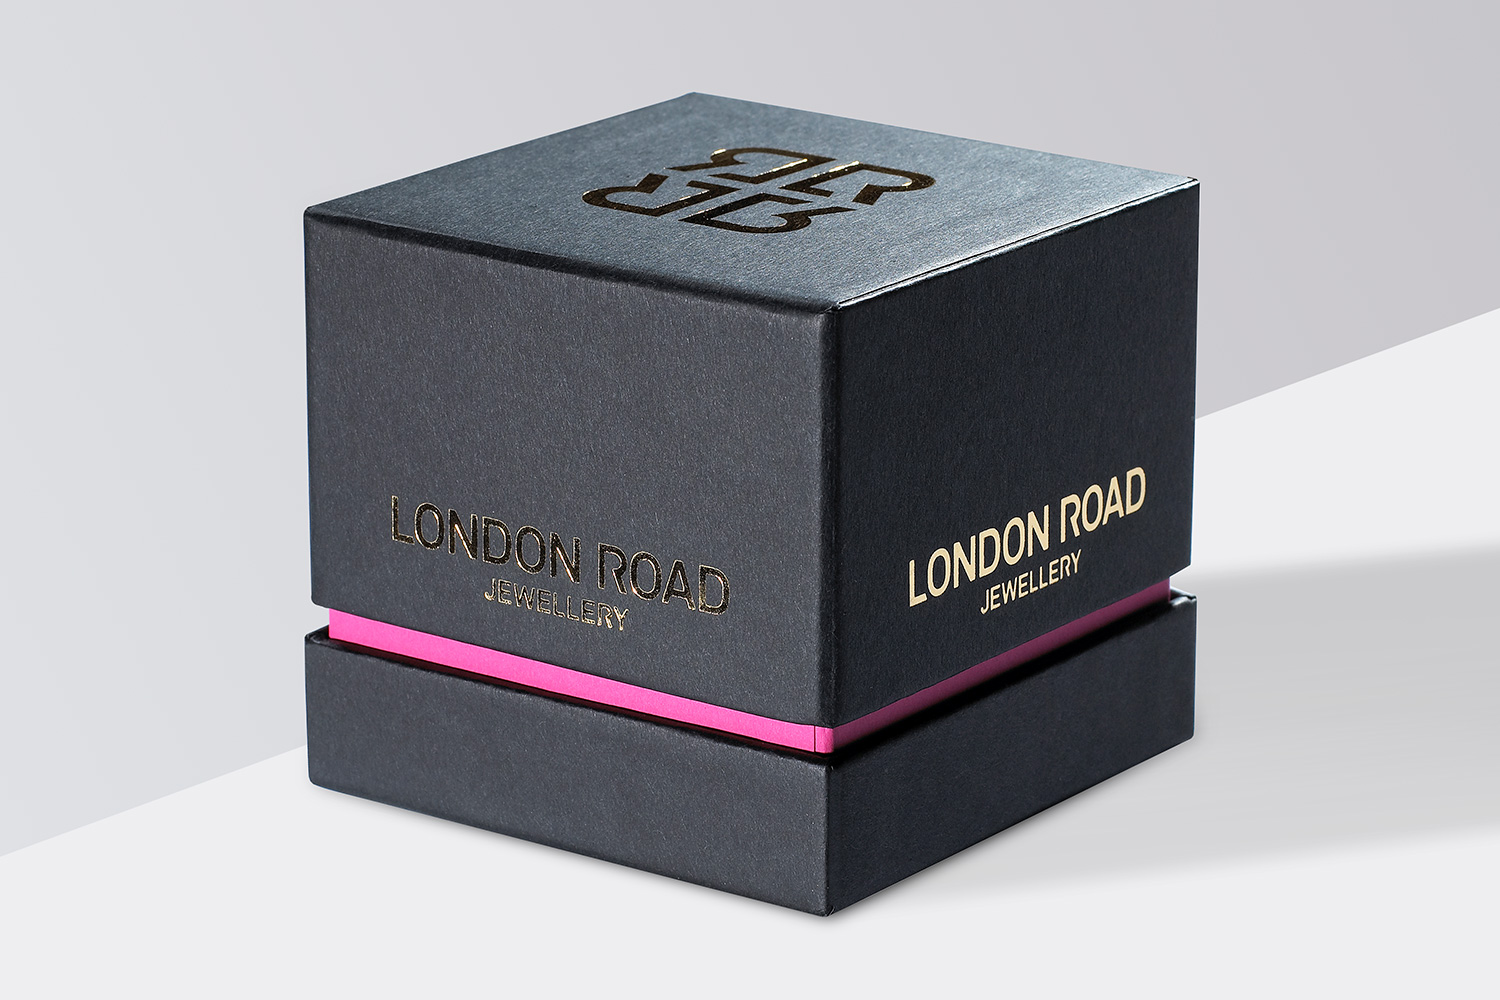 Progress Packaging London Road SEA Luxury Jewellery Box Gold Foil Block